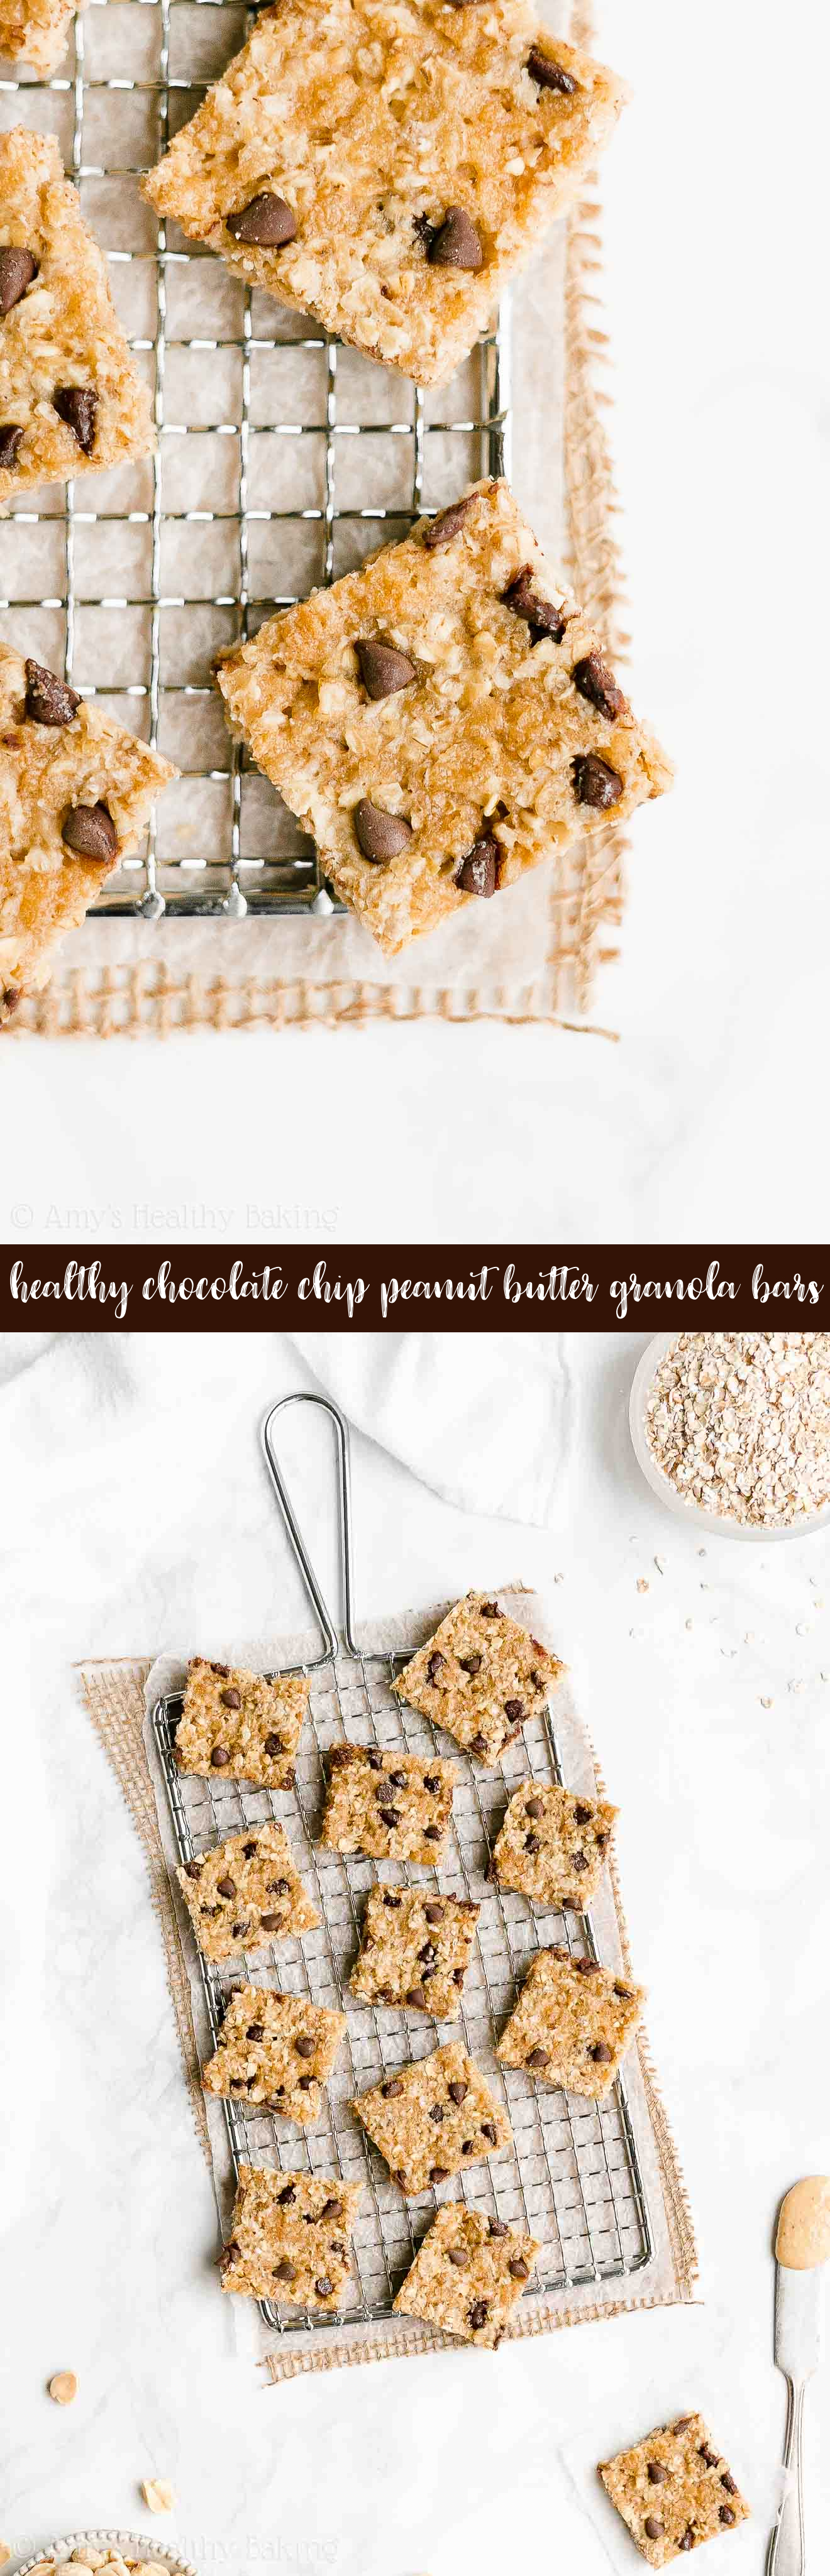 Best Ever Easy Healthy Soft Chewy Chocolate Chip Peanut Butter Granola Bars